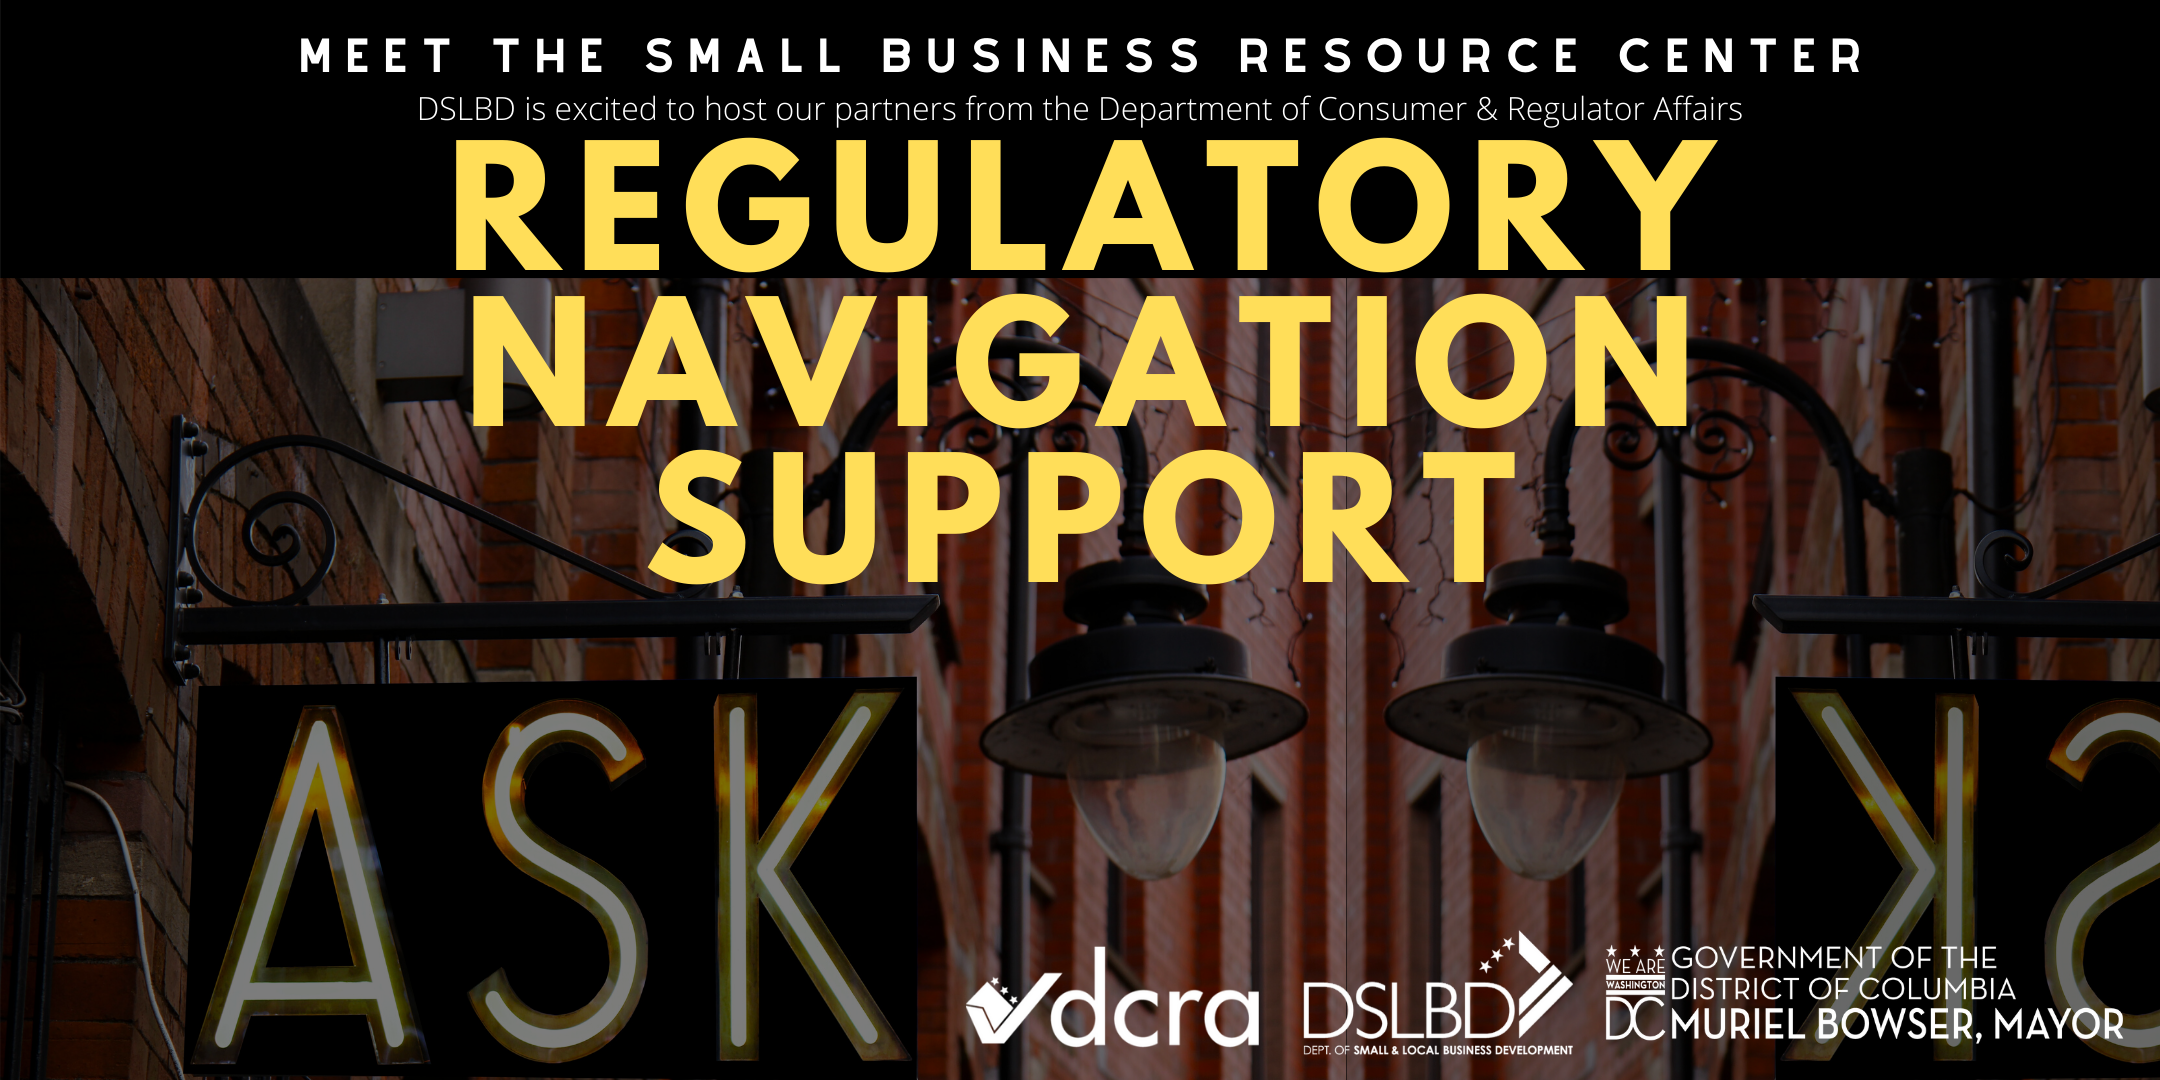 DCRA's Small Business Resource Center at DSLBD